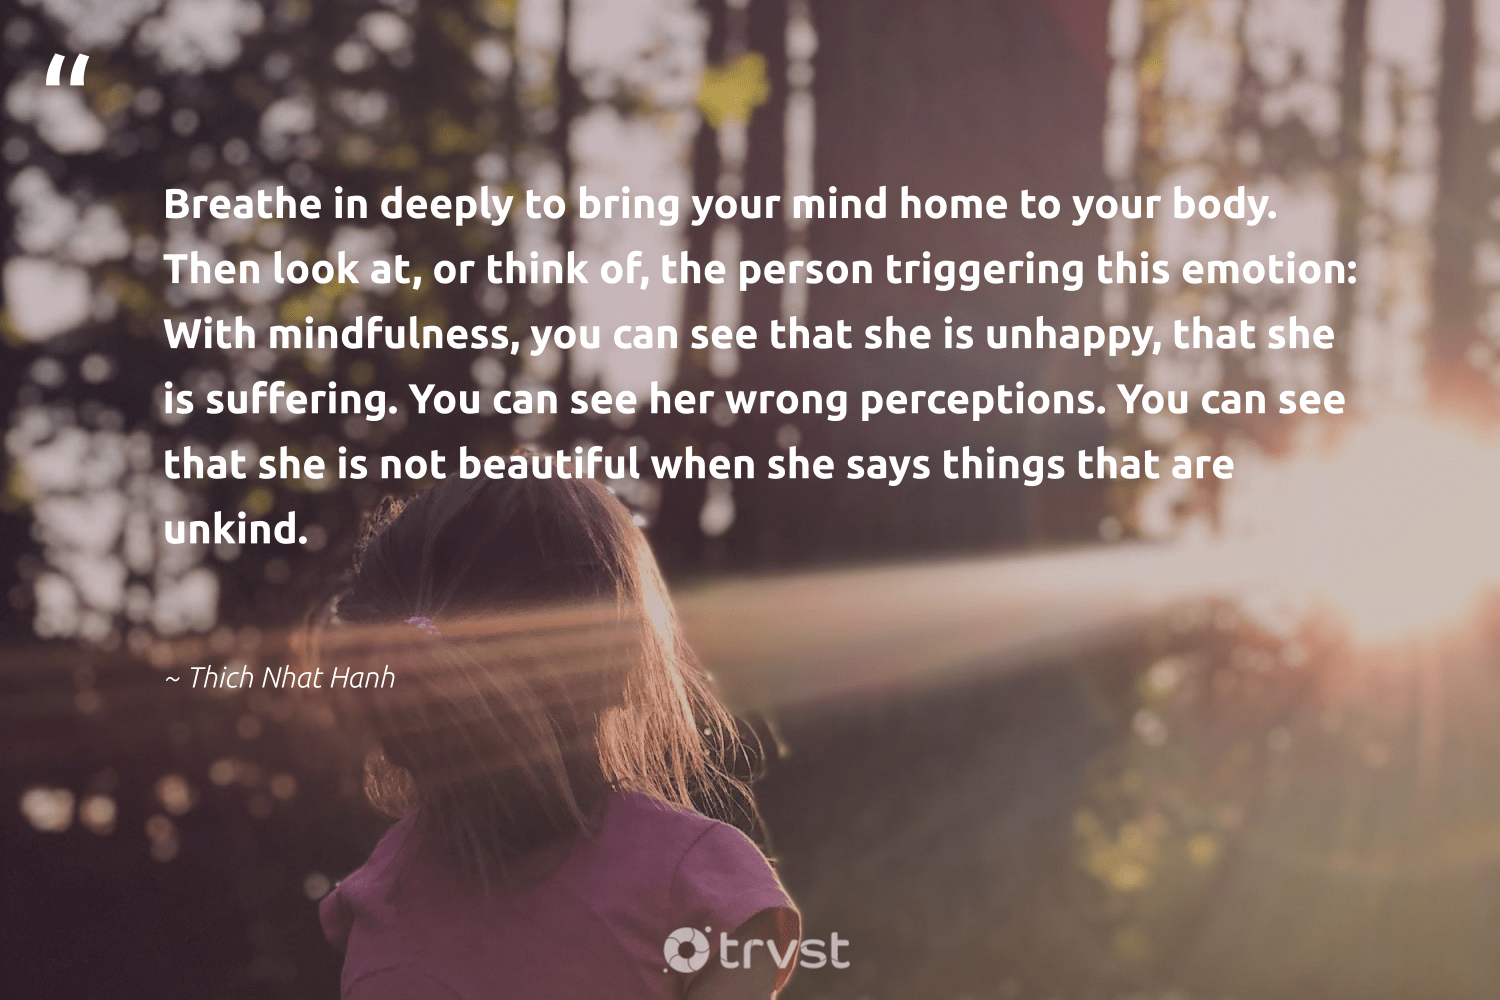 """""""Breathe in deeply to bring your mind home to your body. Then look at, or think of, the person triggering this emotion: With mindfulness, you can see that she is unhappy, that she is suffering. You can see her wrong perceptions. You can see that she is not beautiful when she says things that are unkind.""""  - Thich Nhat Hanh #trvst #quotes #mindfulness #mindful #positivity #mindset #gogreen #entrepreneurmindset #wellness #togetherwecan #socialimpact #meditation"""